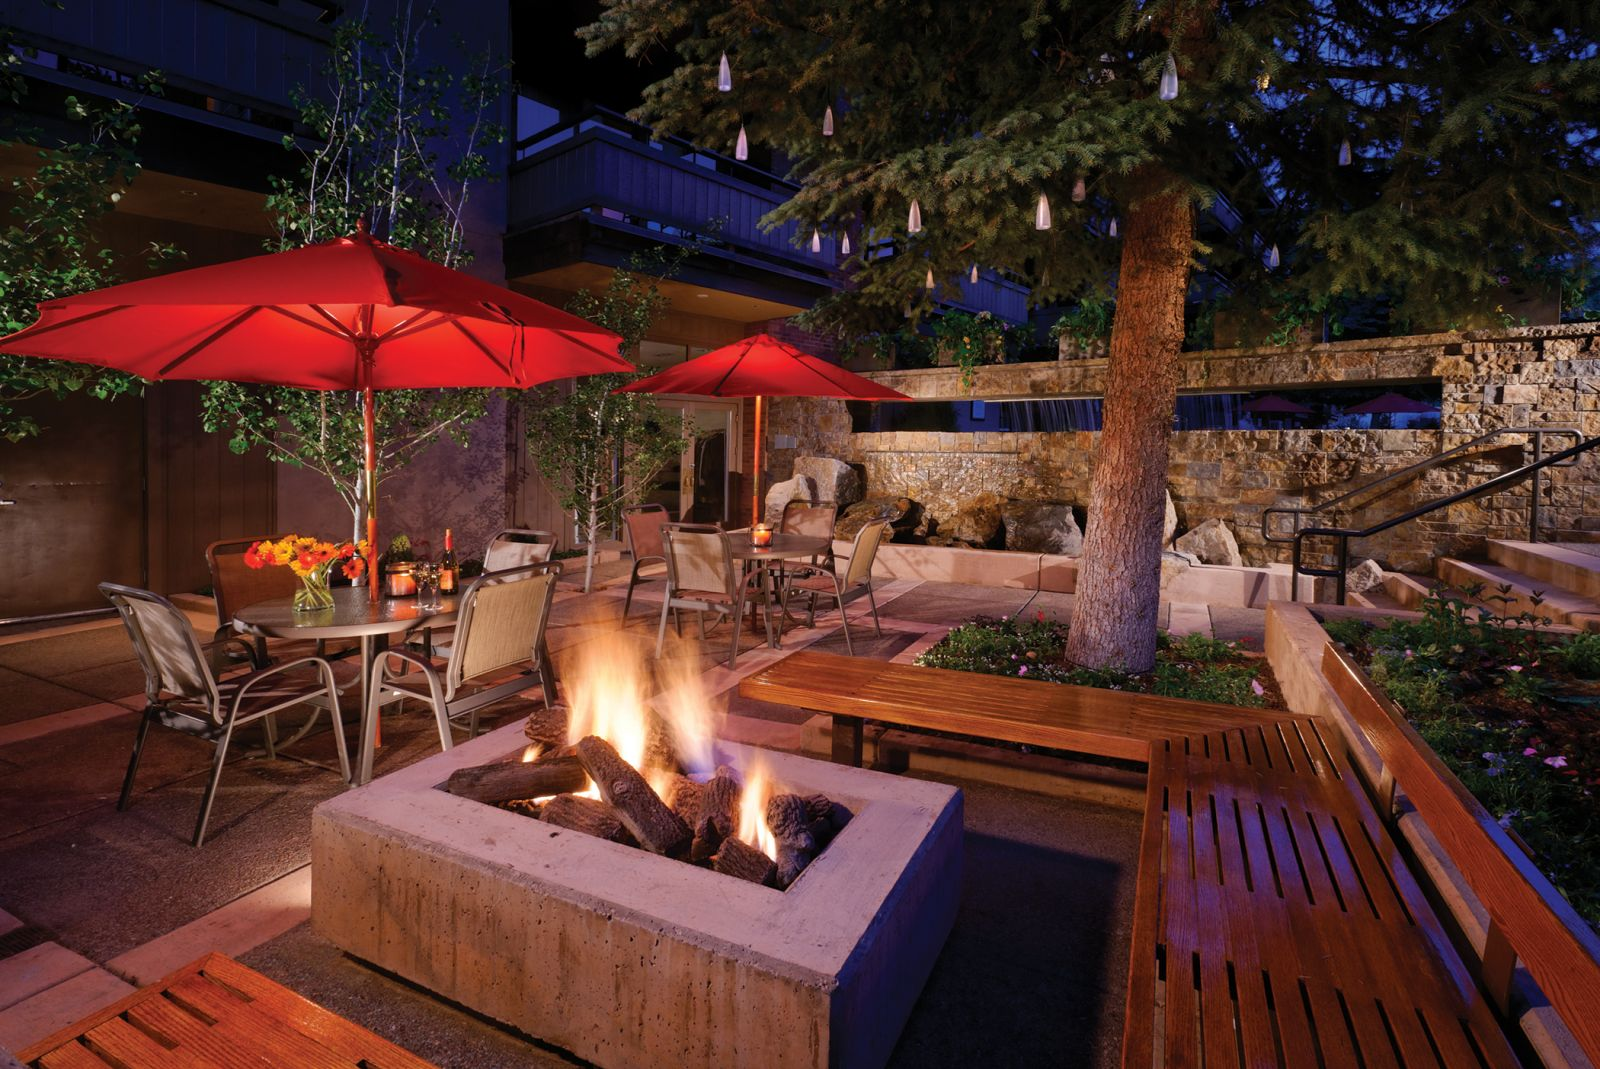 Aspen Square Condominium Hotel Courtyard at night